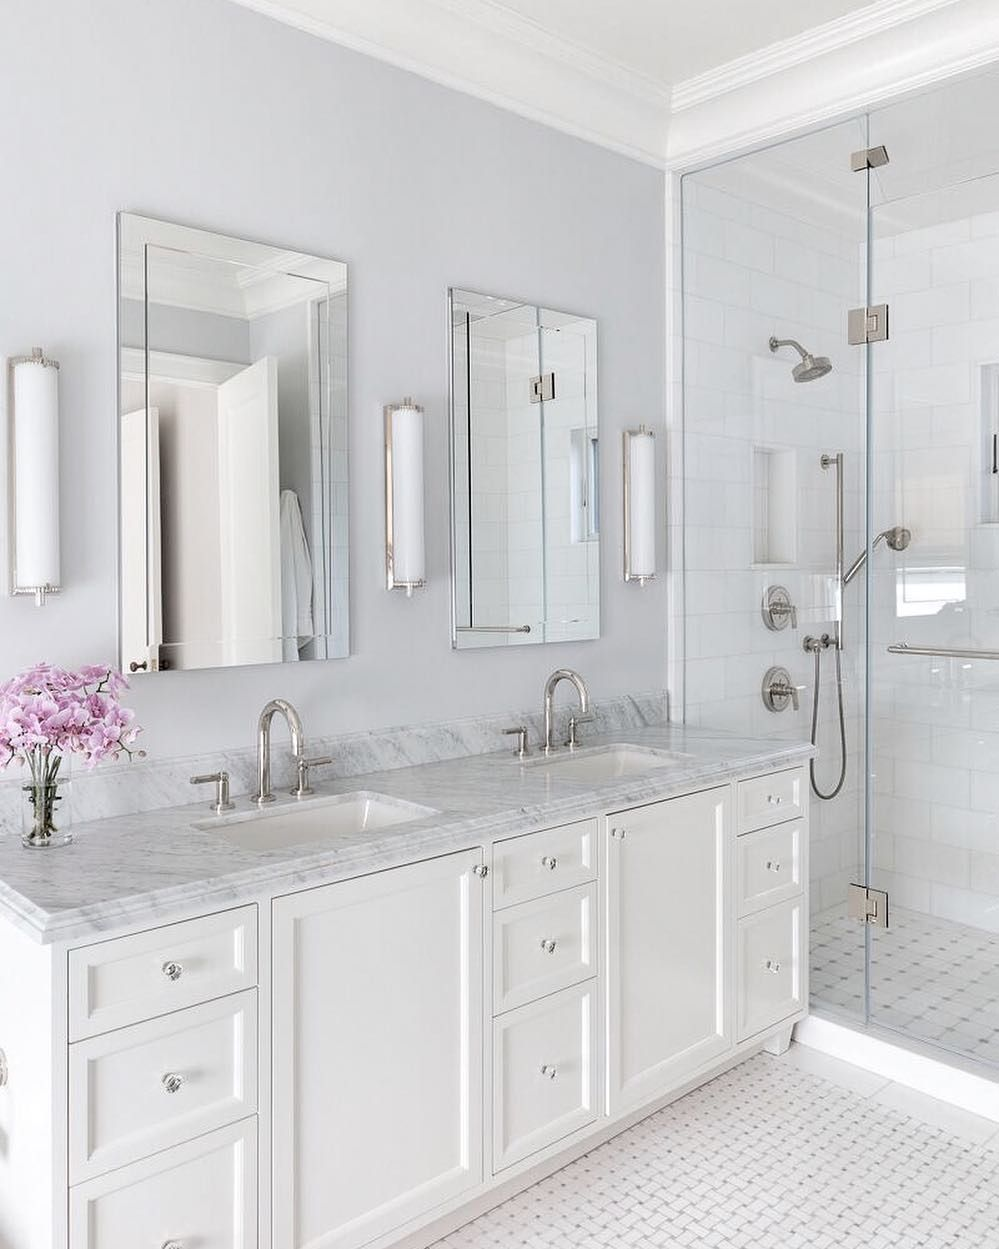 Bathroom Mirror Ideas To Reflect Your Style Bathroom Vanity Designs Timeless Bathroom Vanity